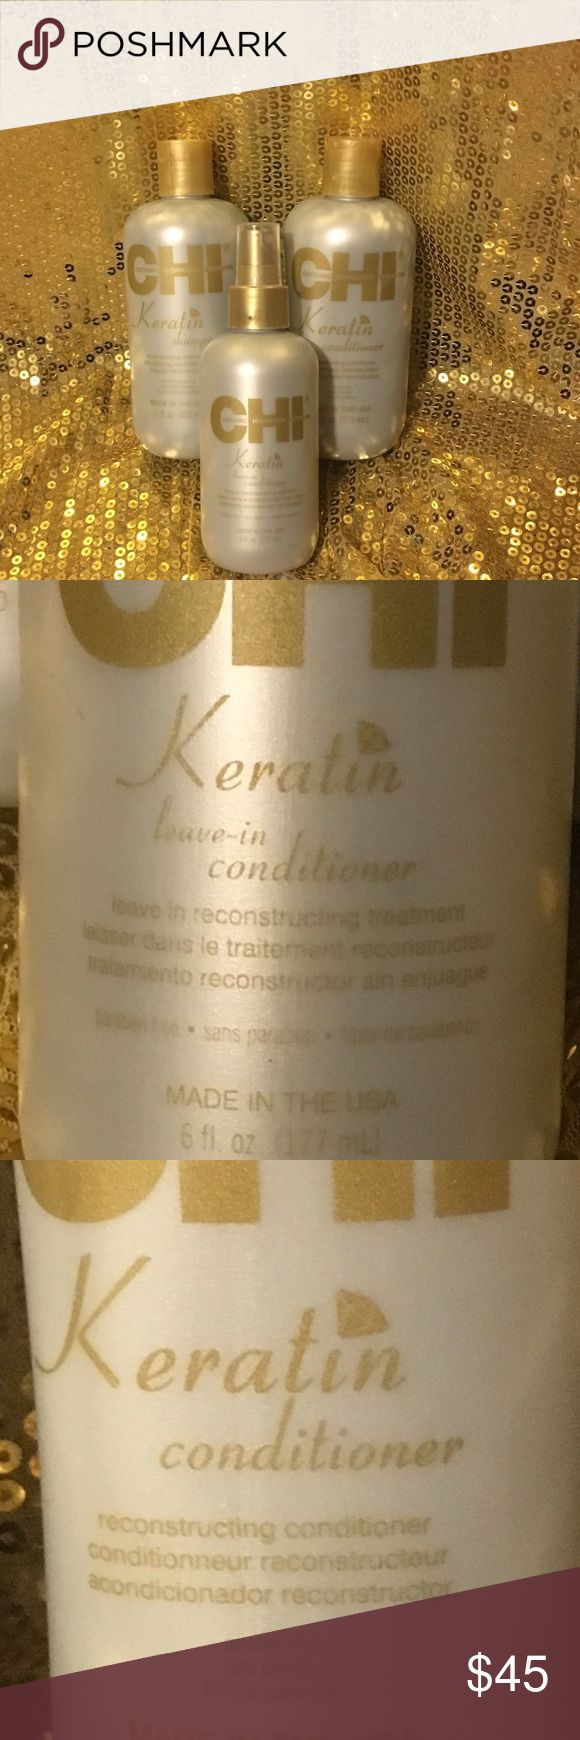 CHI keratin full hair care set Never been used keratin shampoo, conditioner, leave in conditioner. 12fl oz CHI Other